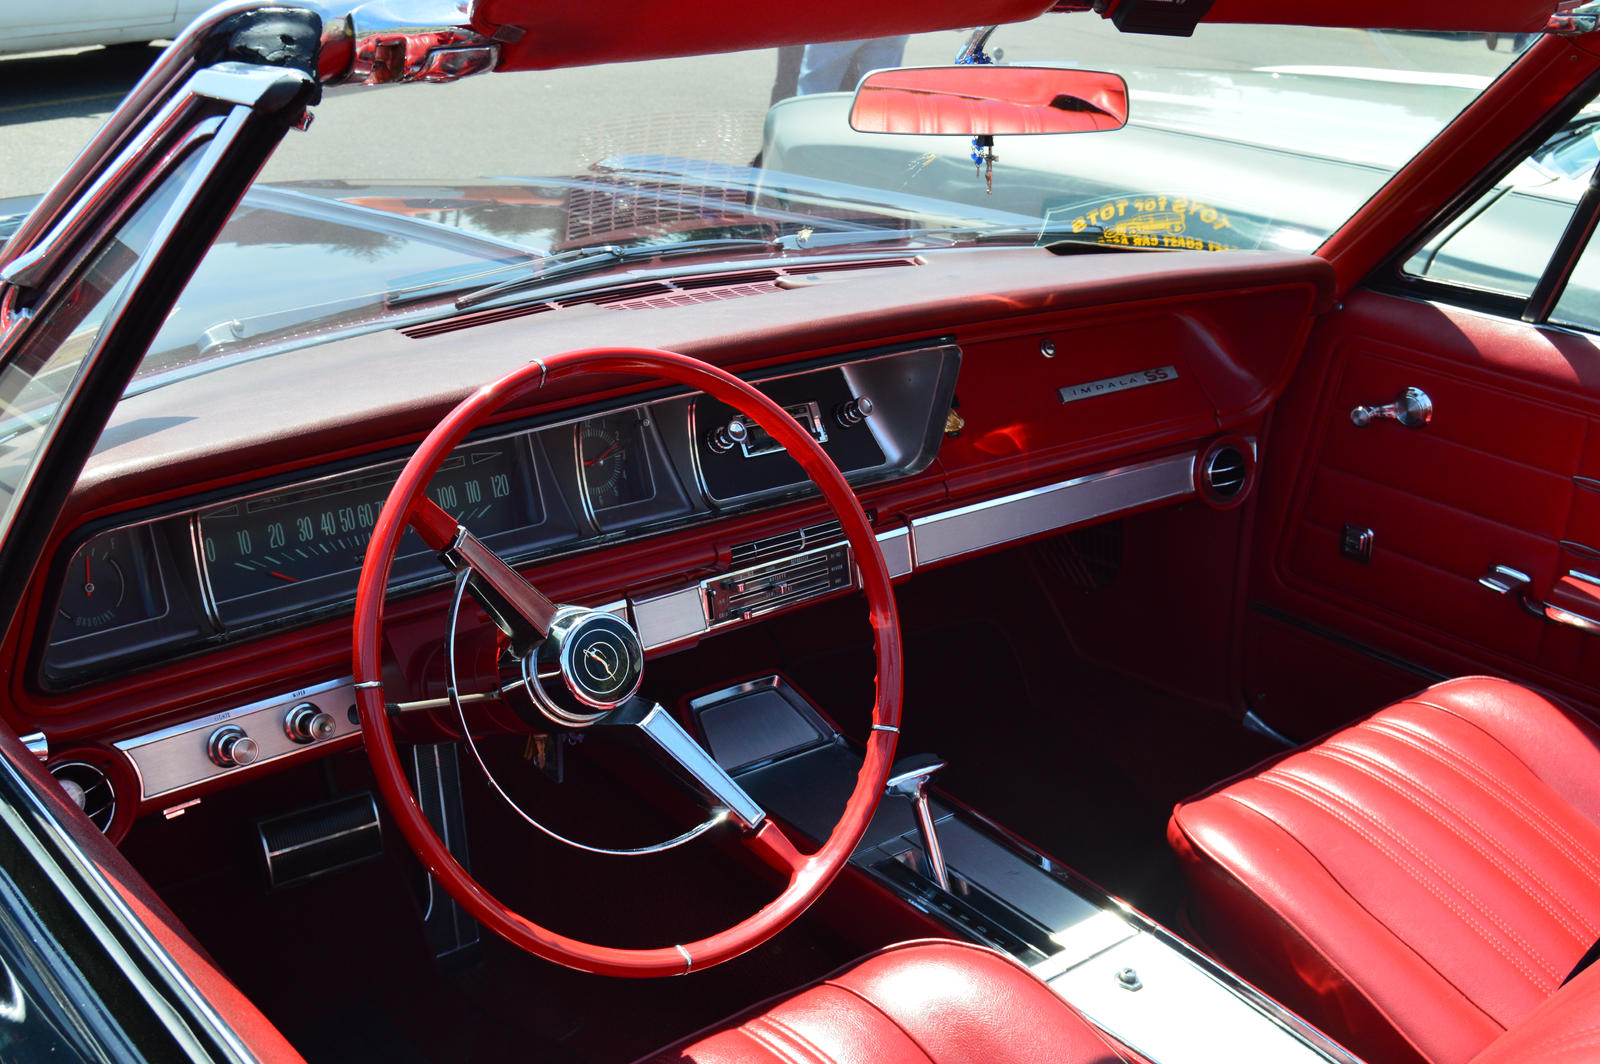 1966 Chevy Impala Super Sport1966 Chevrolet Sport Ss Convertible Interior Ii By